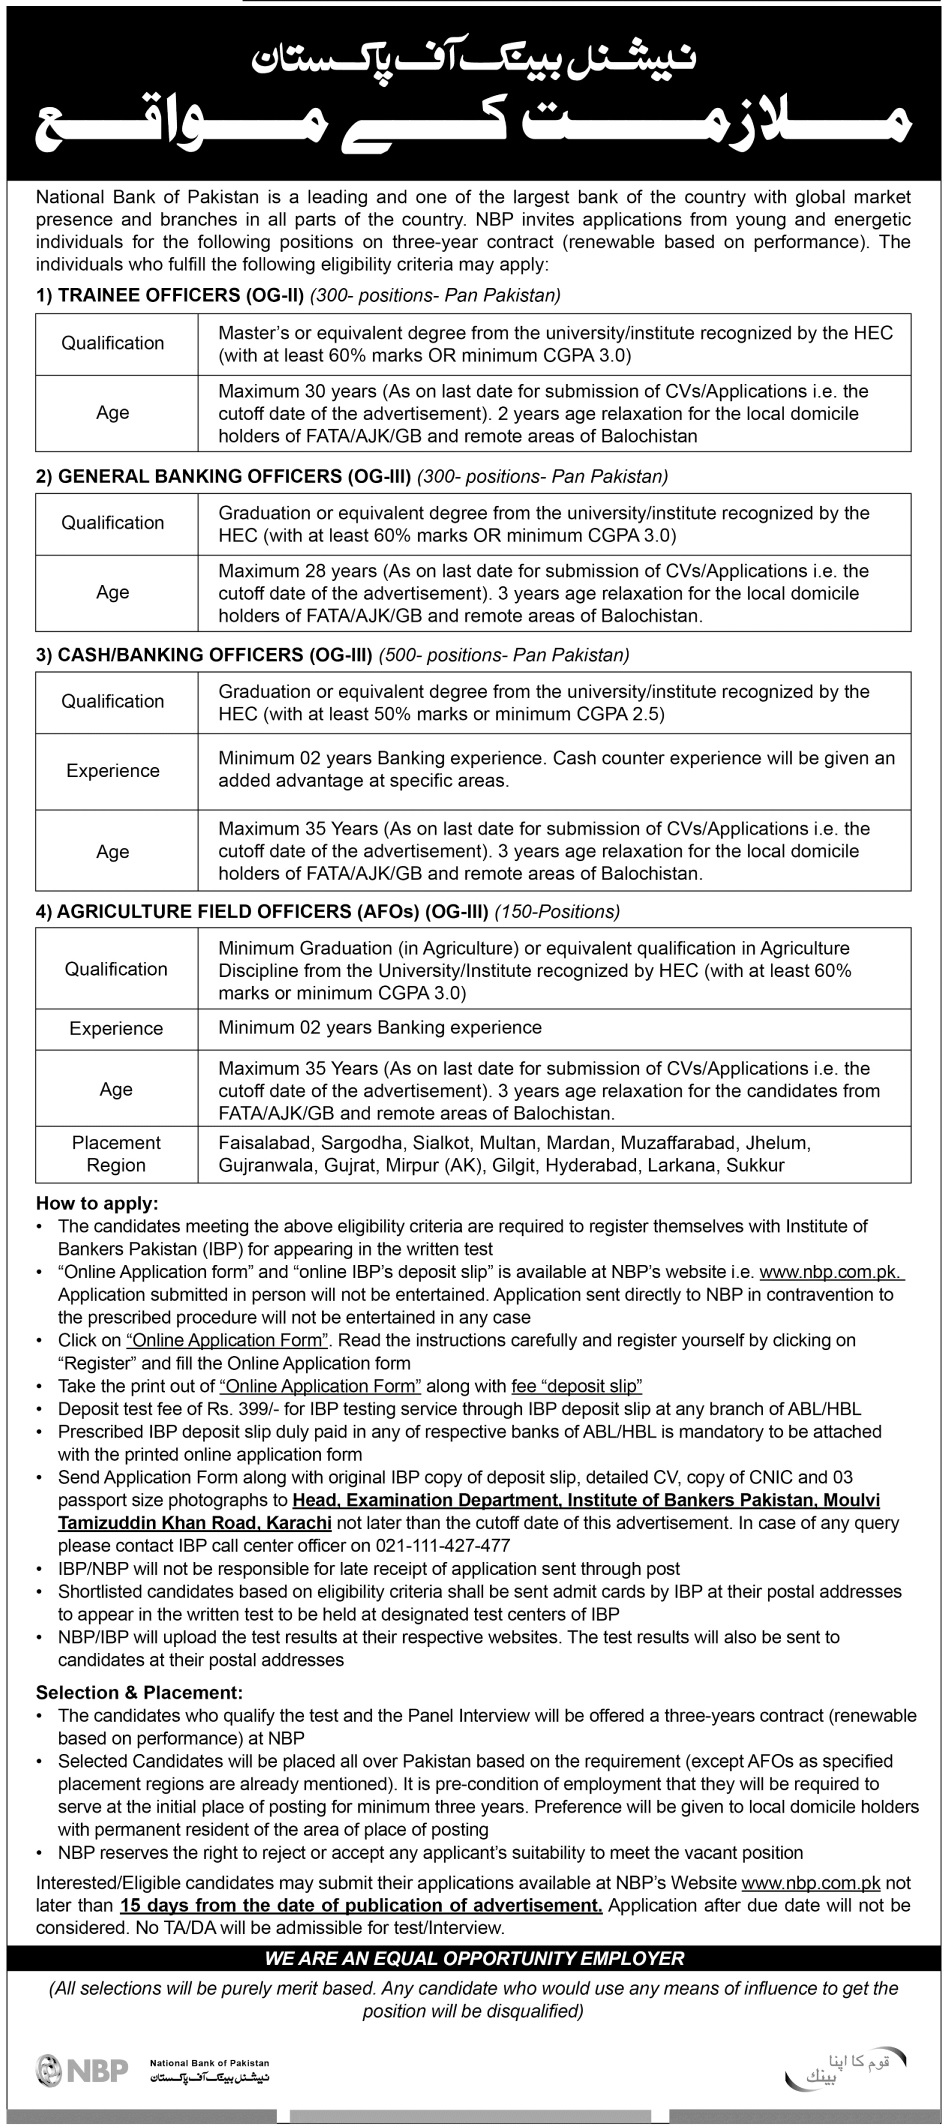 NBP Jobs 2017 Latest National Bank of Pakistan For Cash, Banking and Trainee Officers